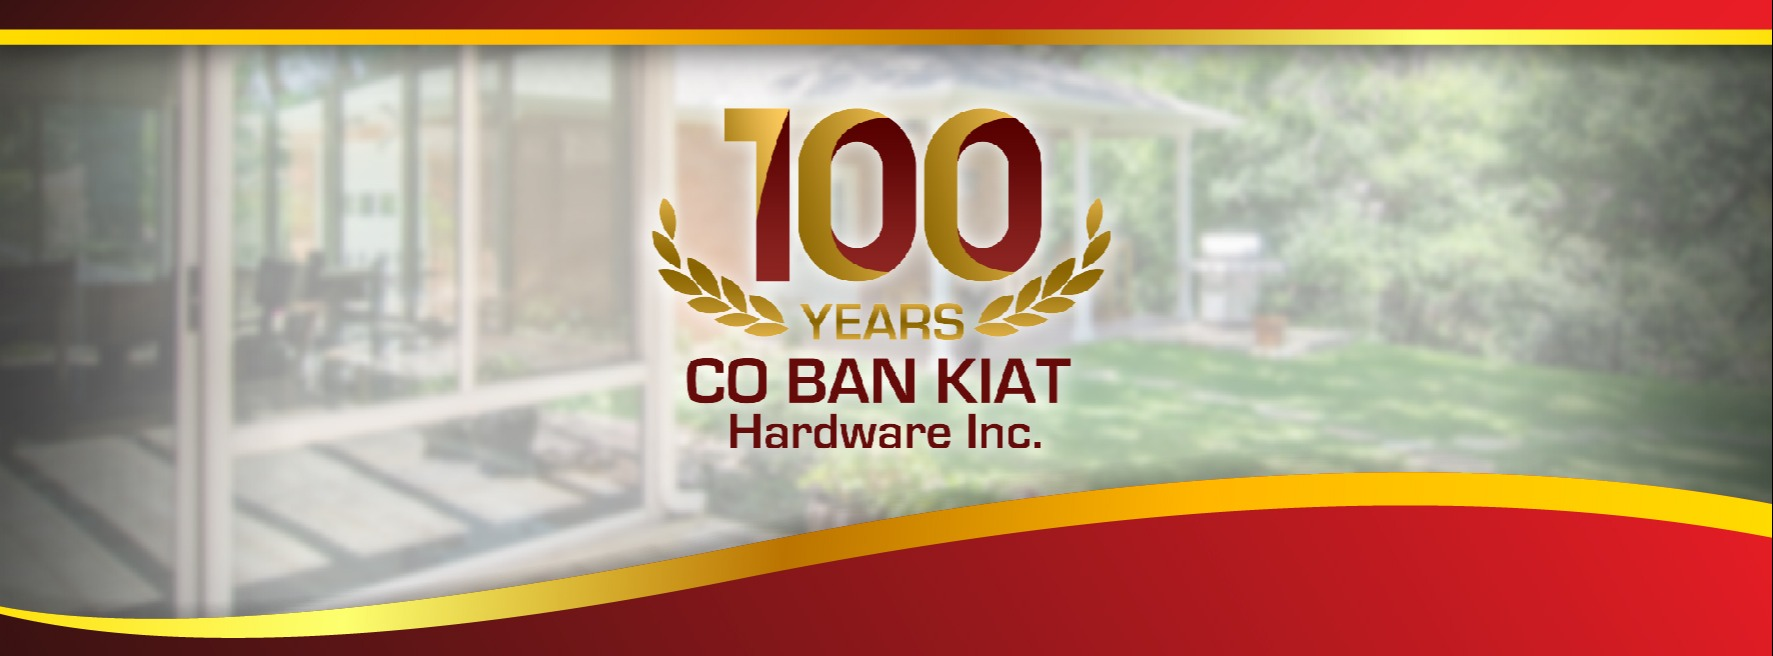 CO BAN KIAT HARDWARE Official Online Store | Lazada Philippines